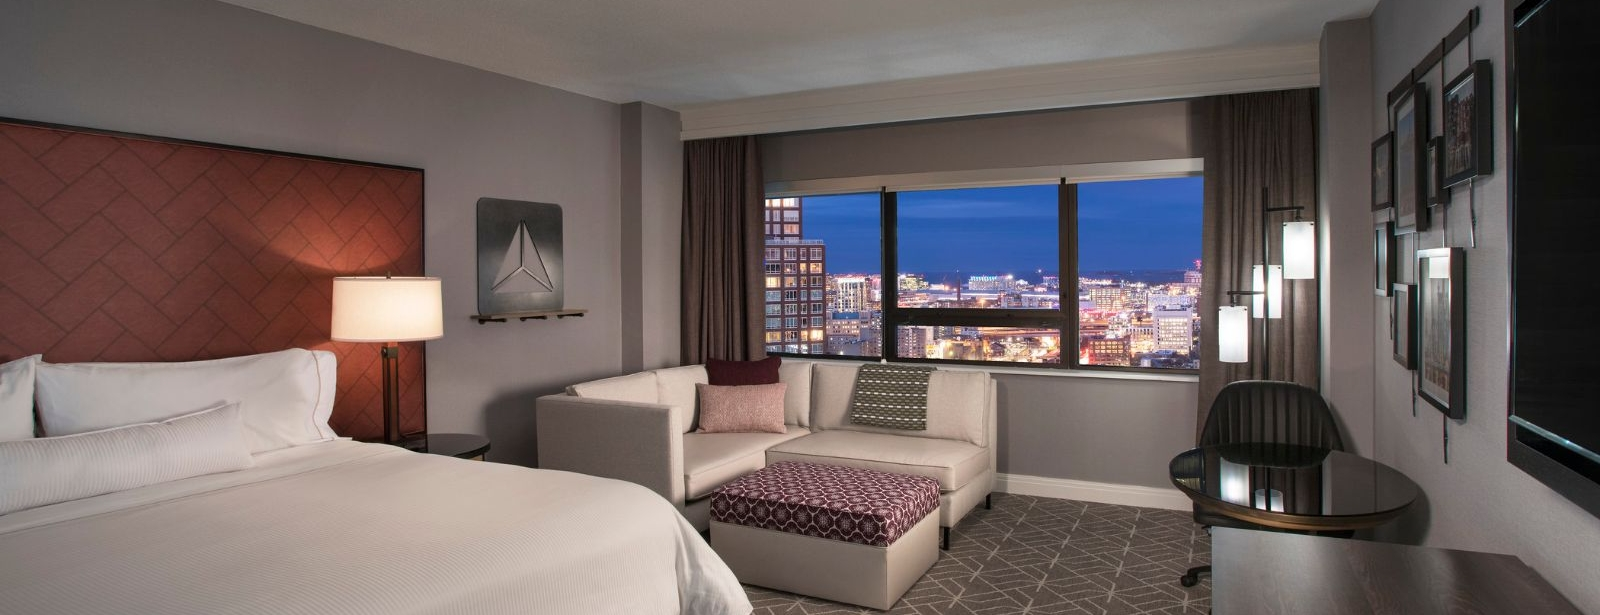 Room and View at Westin Copley Place